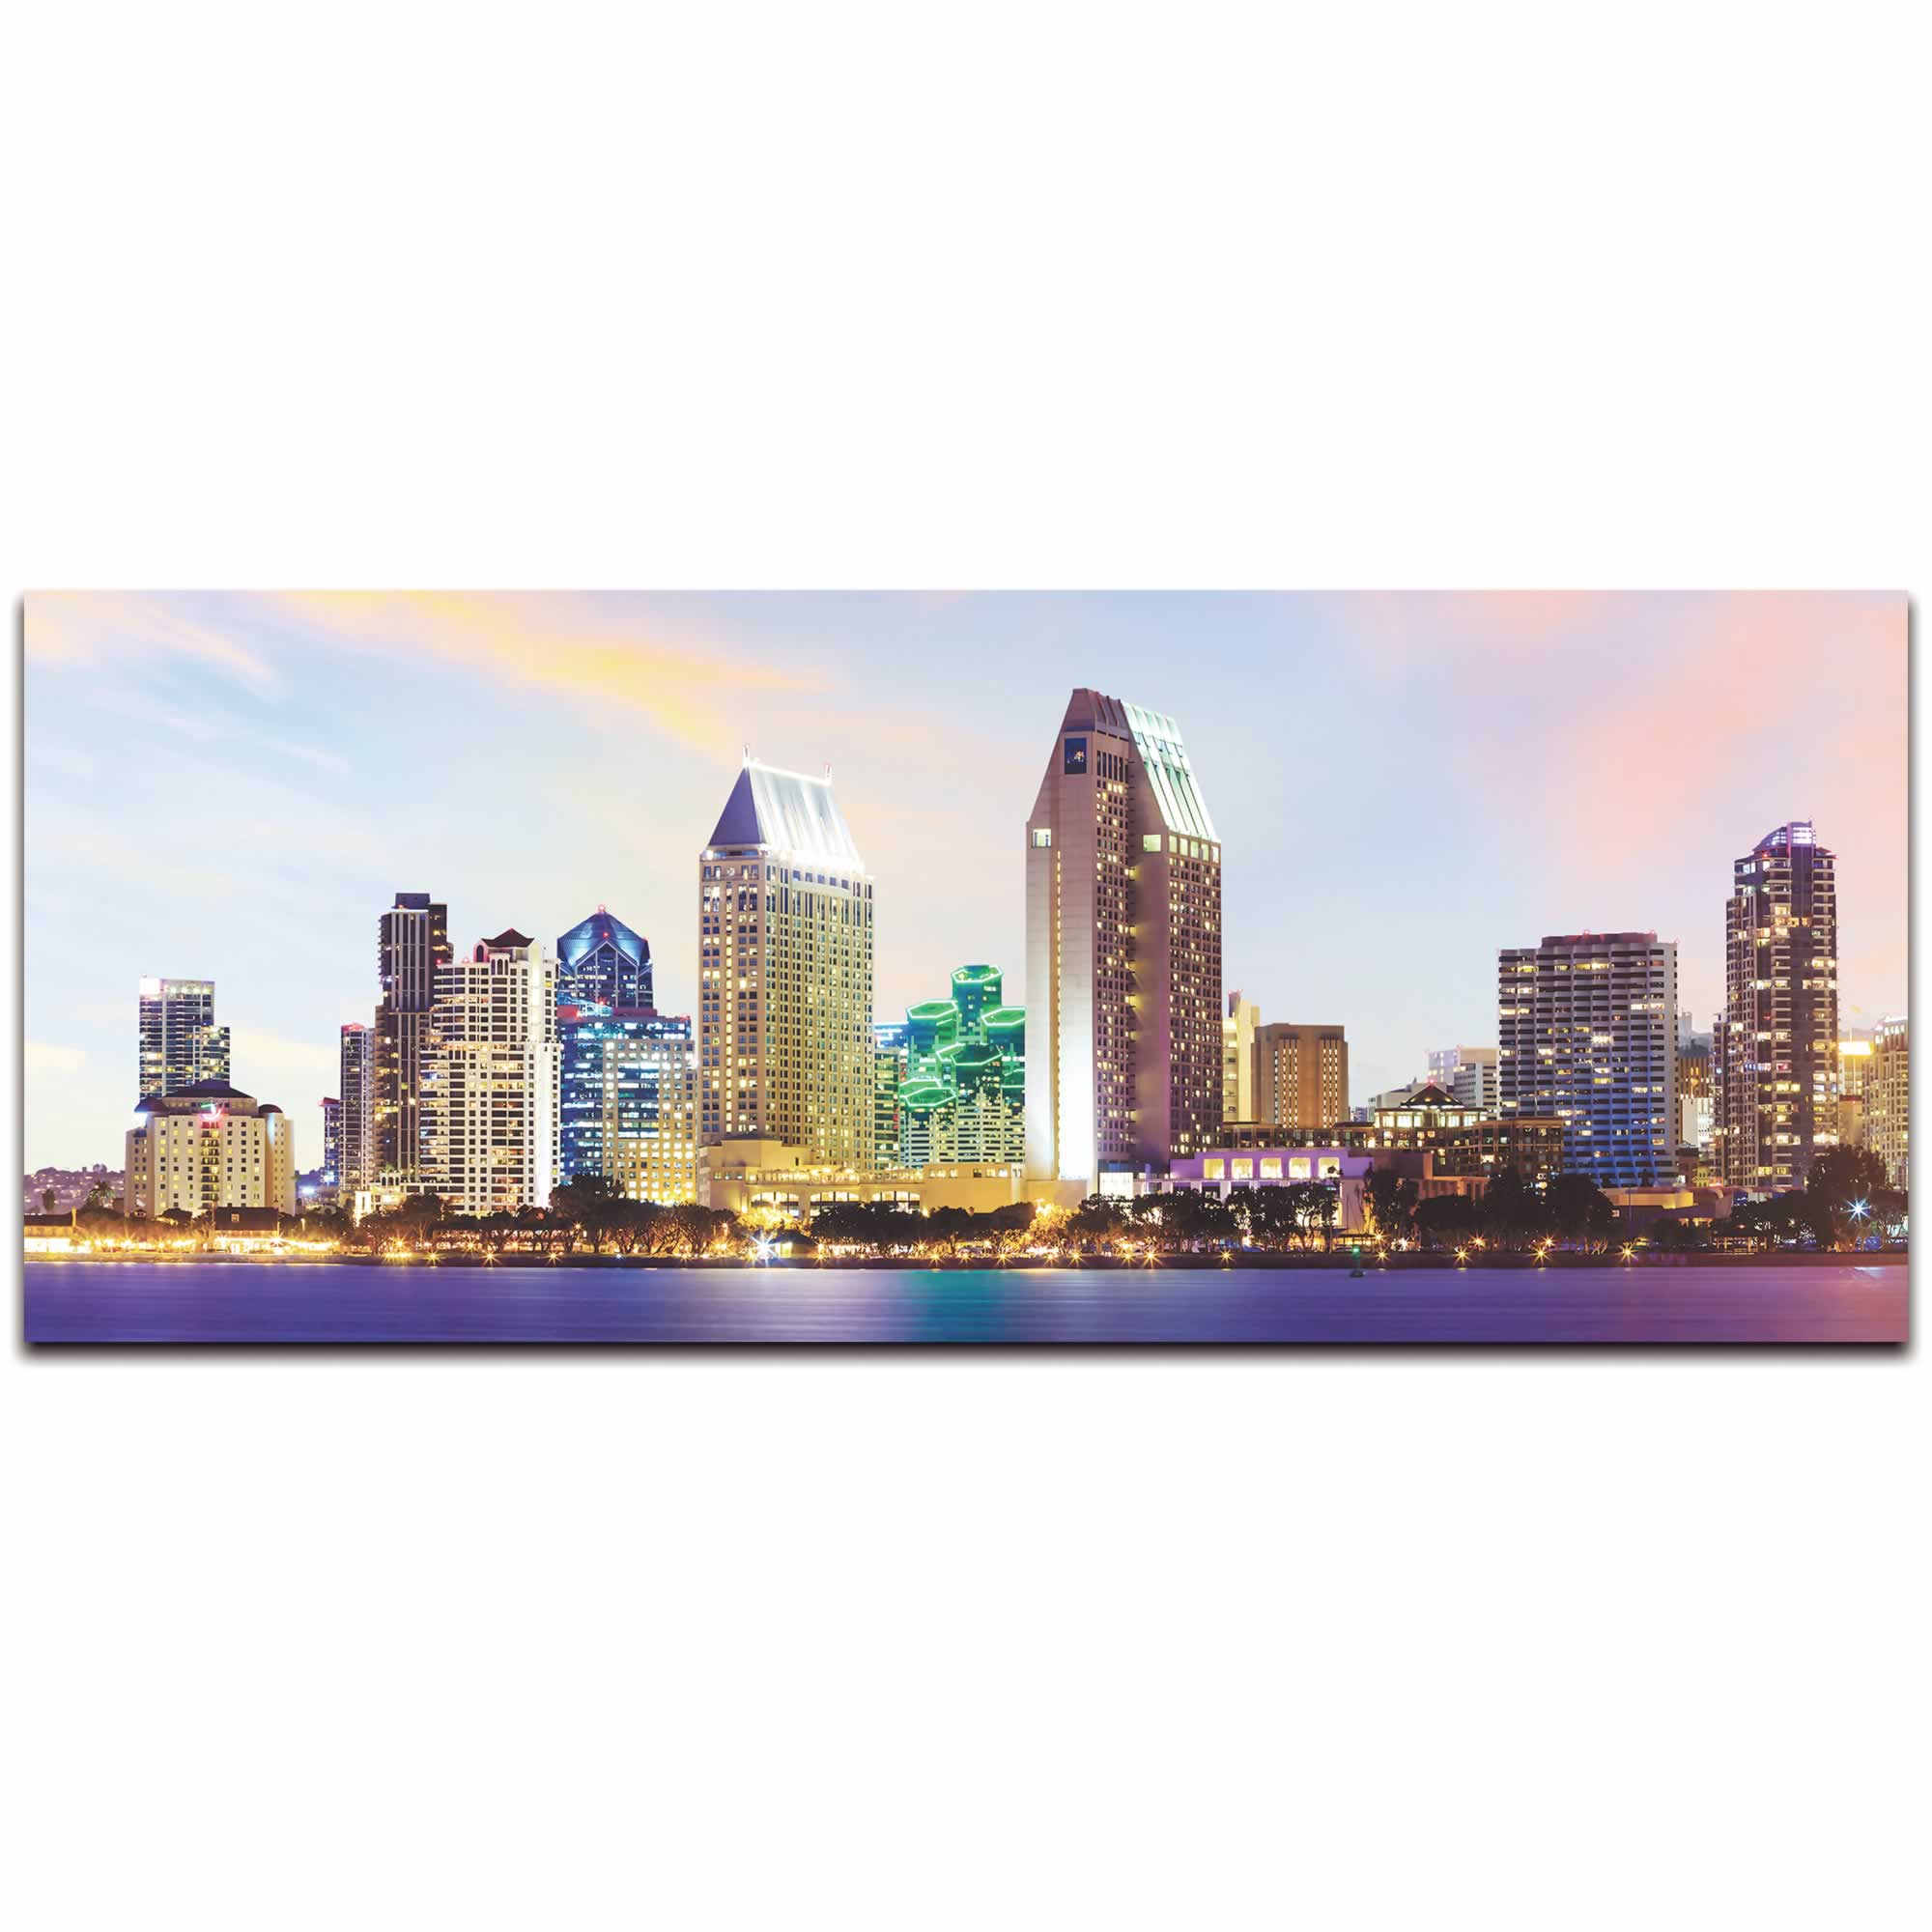 San Diego City Skyline - Urban Modern Art, Designer Home Decor, Cityscape Wall Artwork, Trendy Contemporary Art - Alternate View 2